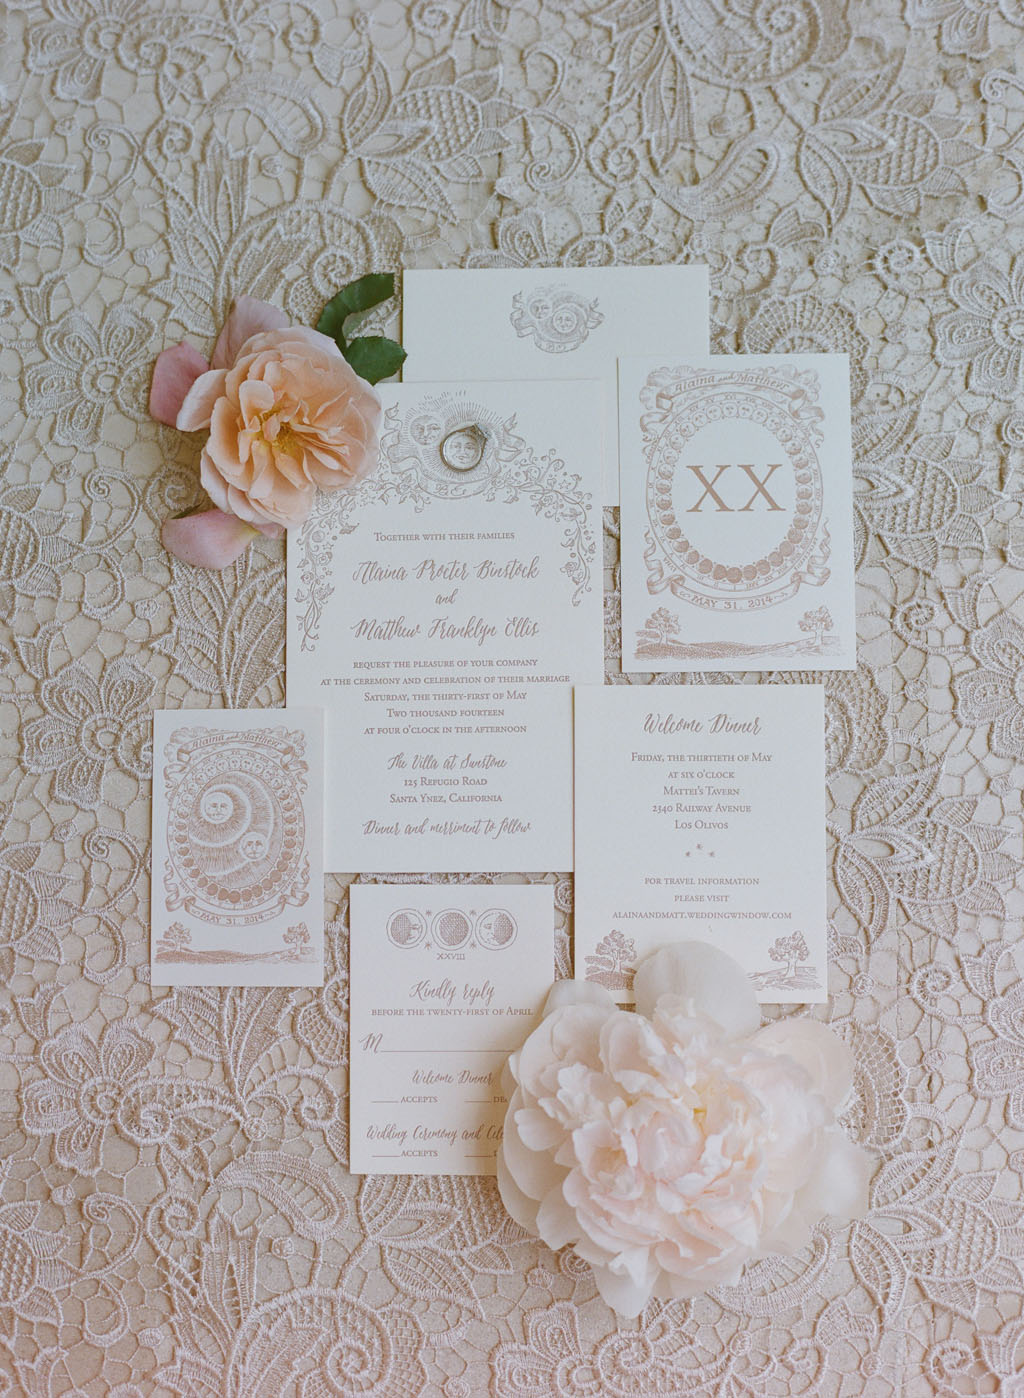 www.SantaBarbaraWedding.com | Merryl Brown Events | Wedding Invitation | Elizabeth Messina | Phases of the Moon Theme Wedding | THE STATIONERY COLLECTION | JANICE BLAIR CALLIGRAPHY